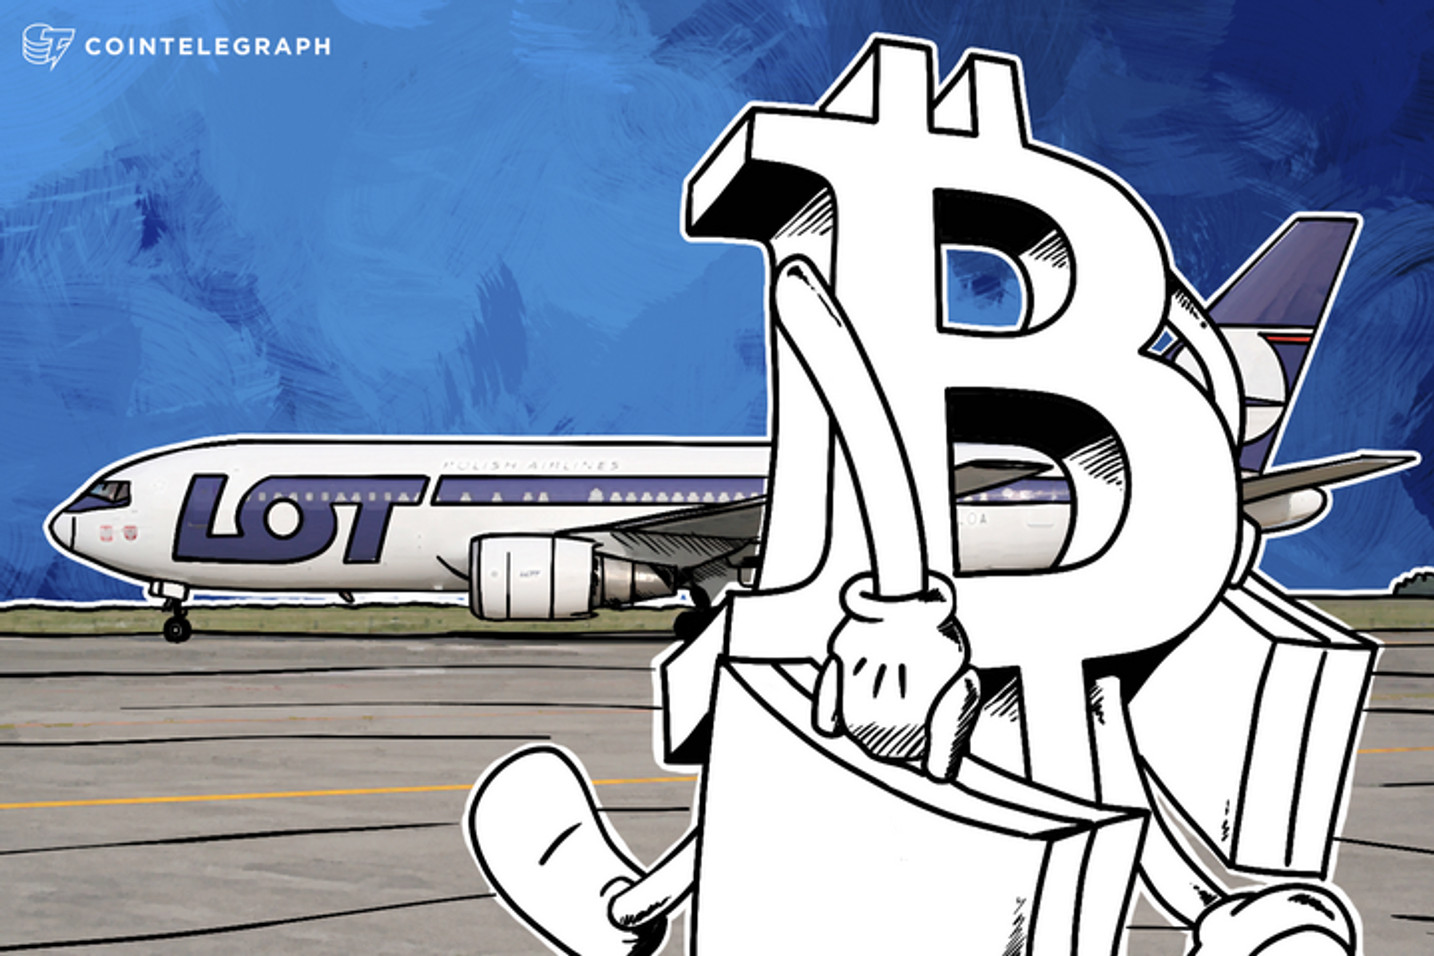 Poland's State-Owned LOT Airlines Now Accepts Bitcoin